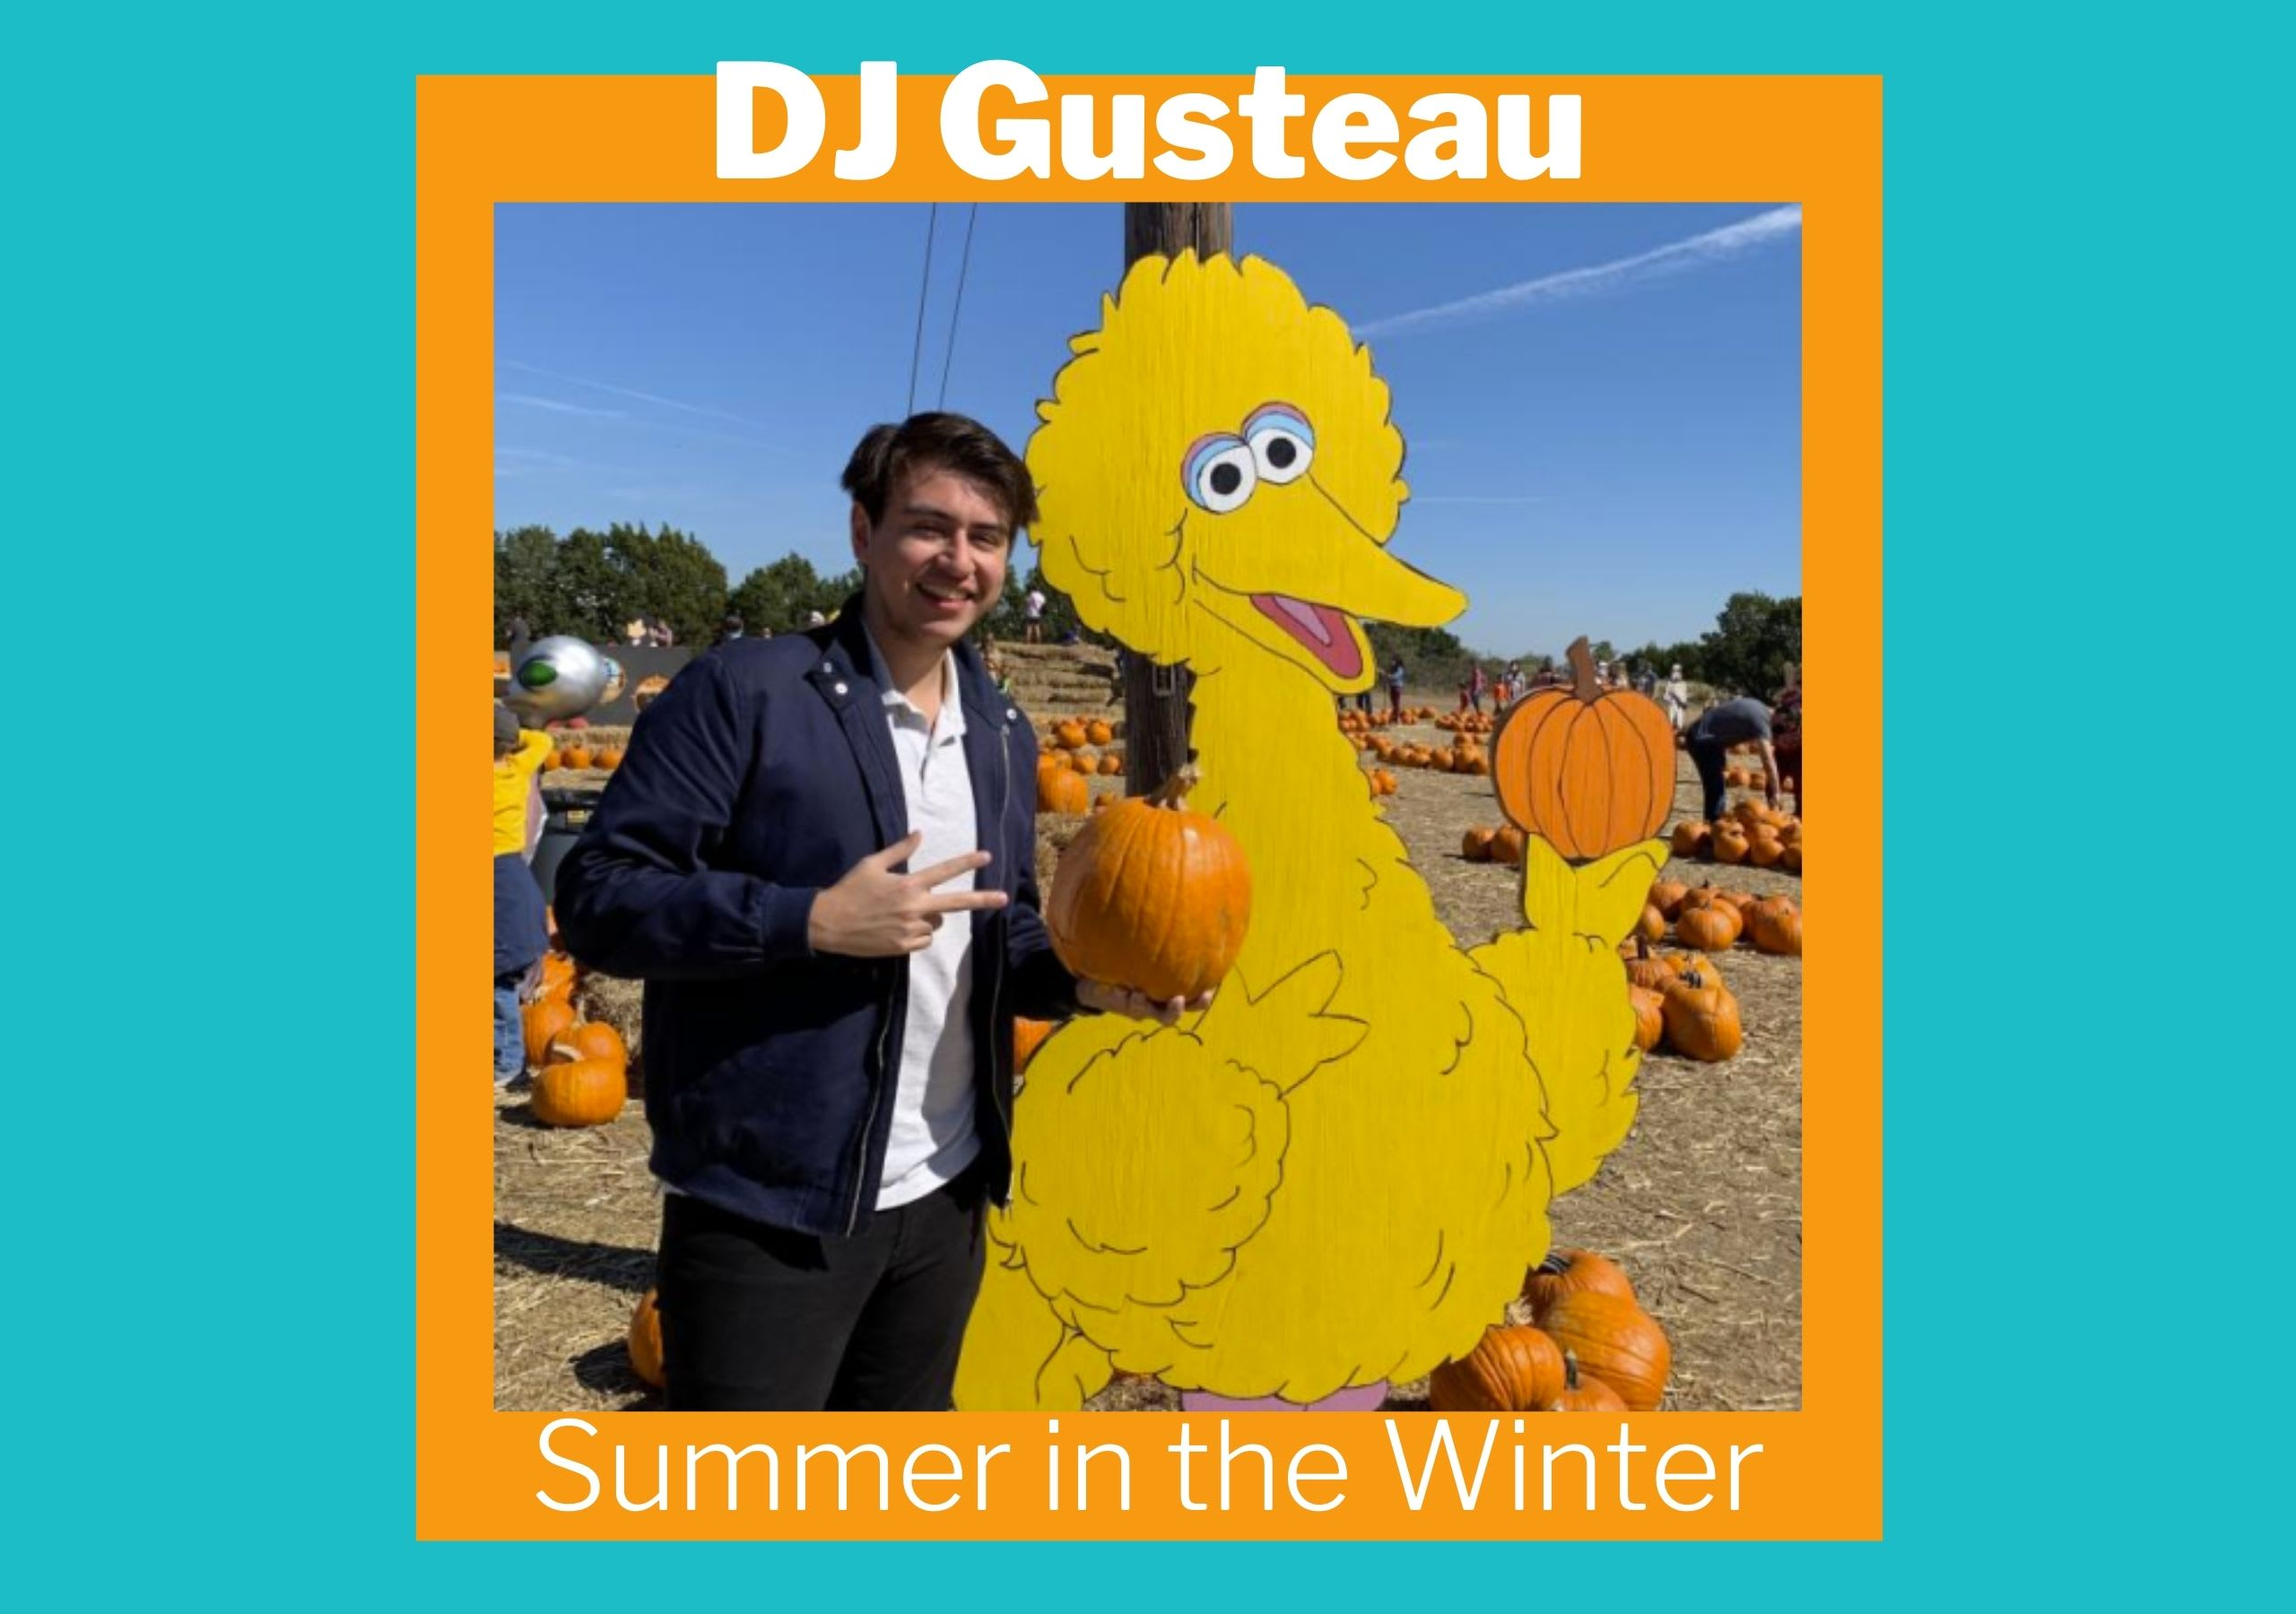 Show Spotlight: Summer in the Winter with DJ gusteau